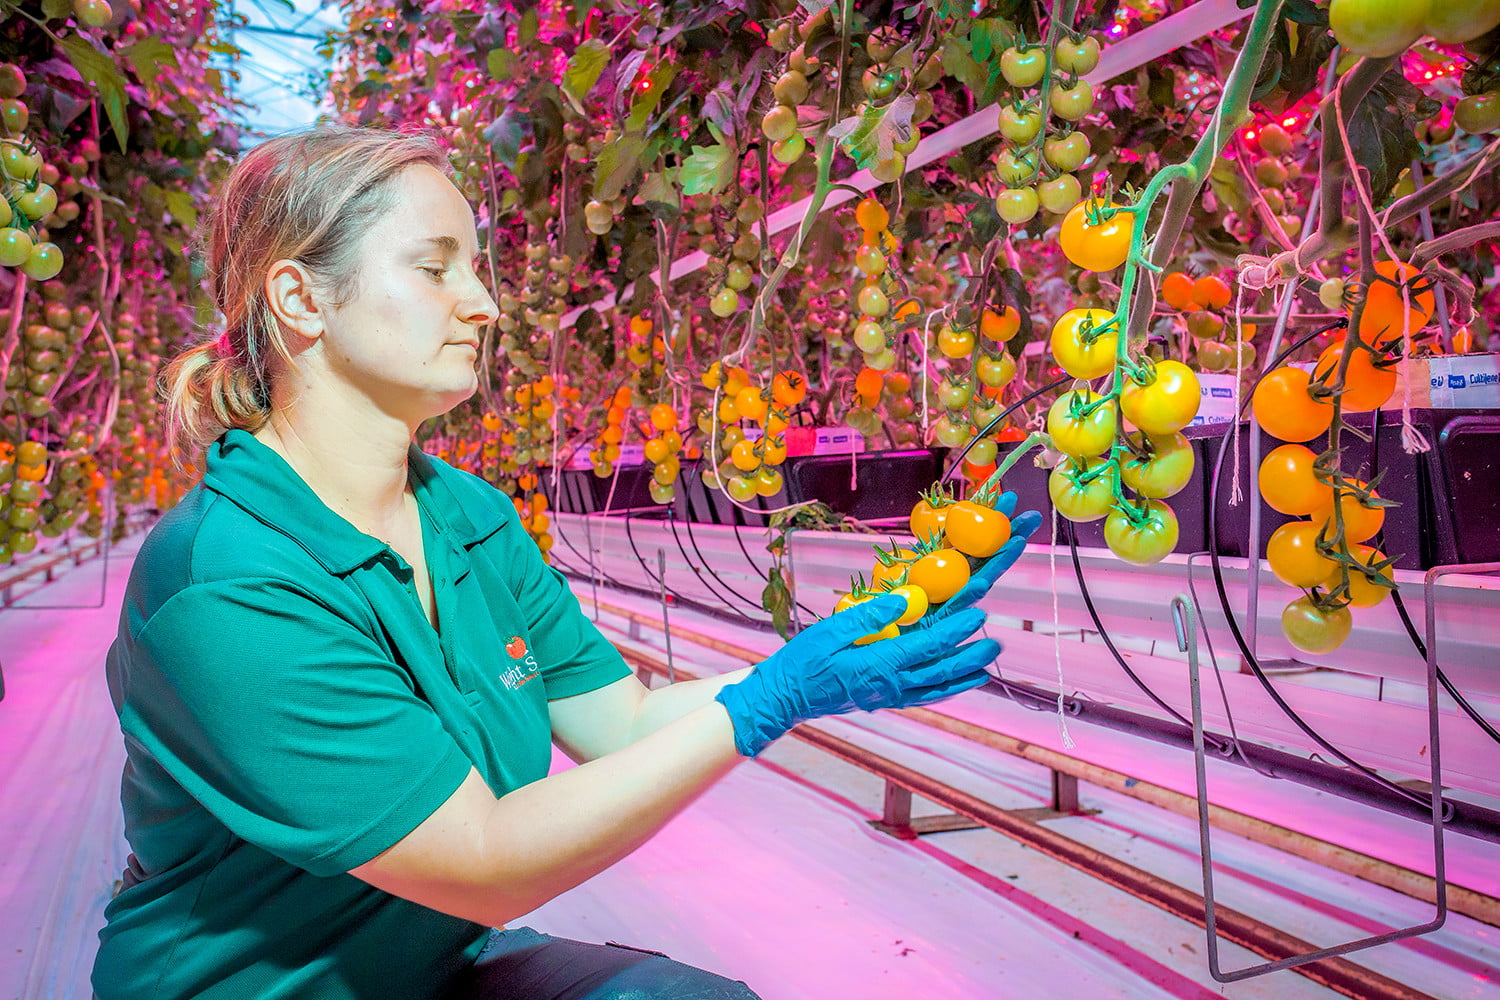 oneplus  news vertical farming future of food